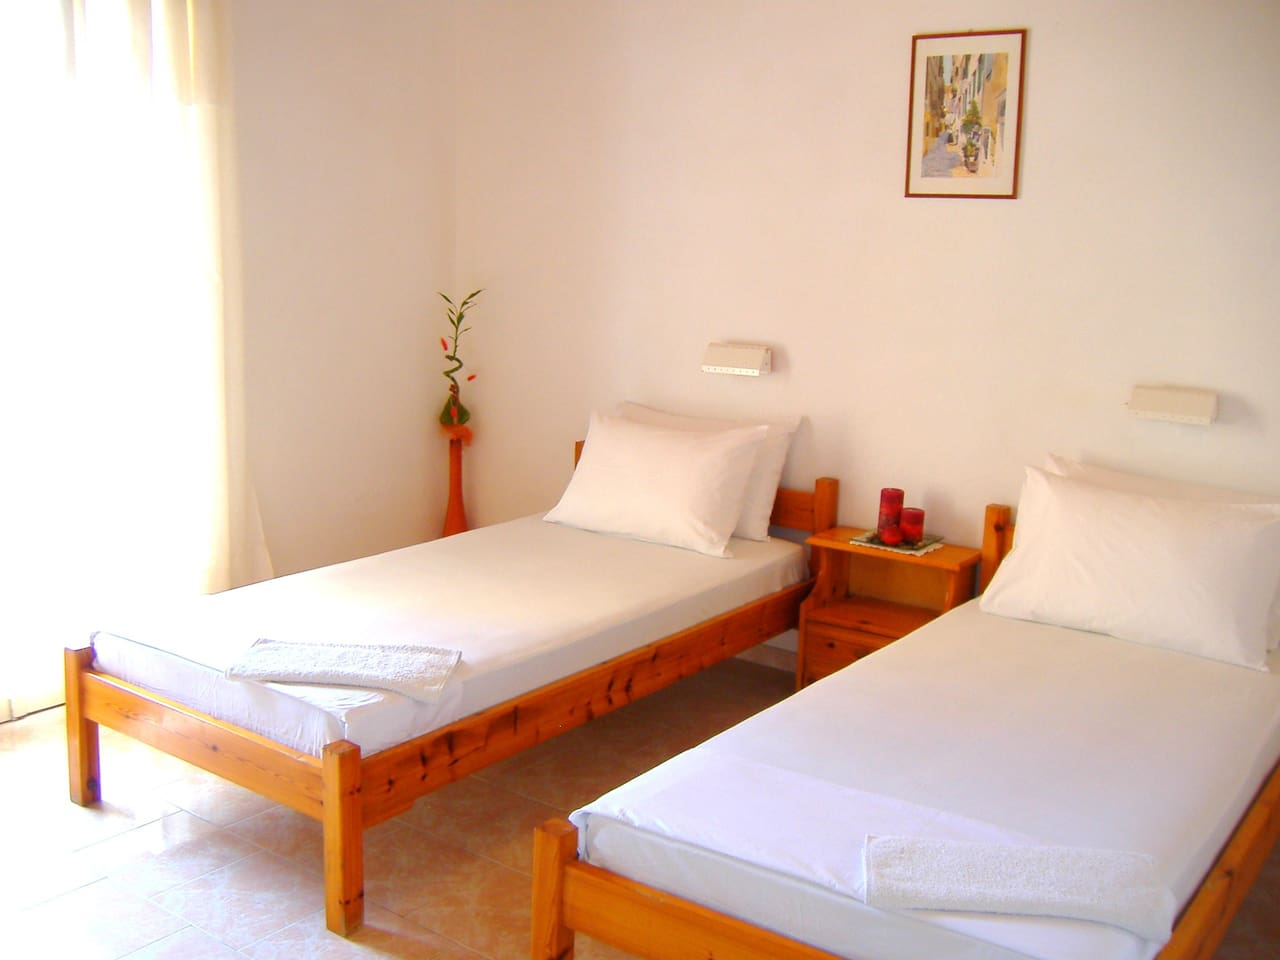 Room Facilities: Bathroom with Shower, Air Conditioning, Balcony, Toilet, Heating, Tea/Coffee Maker, Wake Up Service, Kitchenette, Refrigerator, Work Desk, Kitchen, Seating Area, Free Wi-Fi